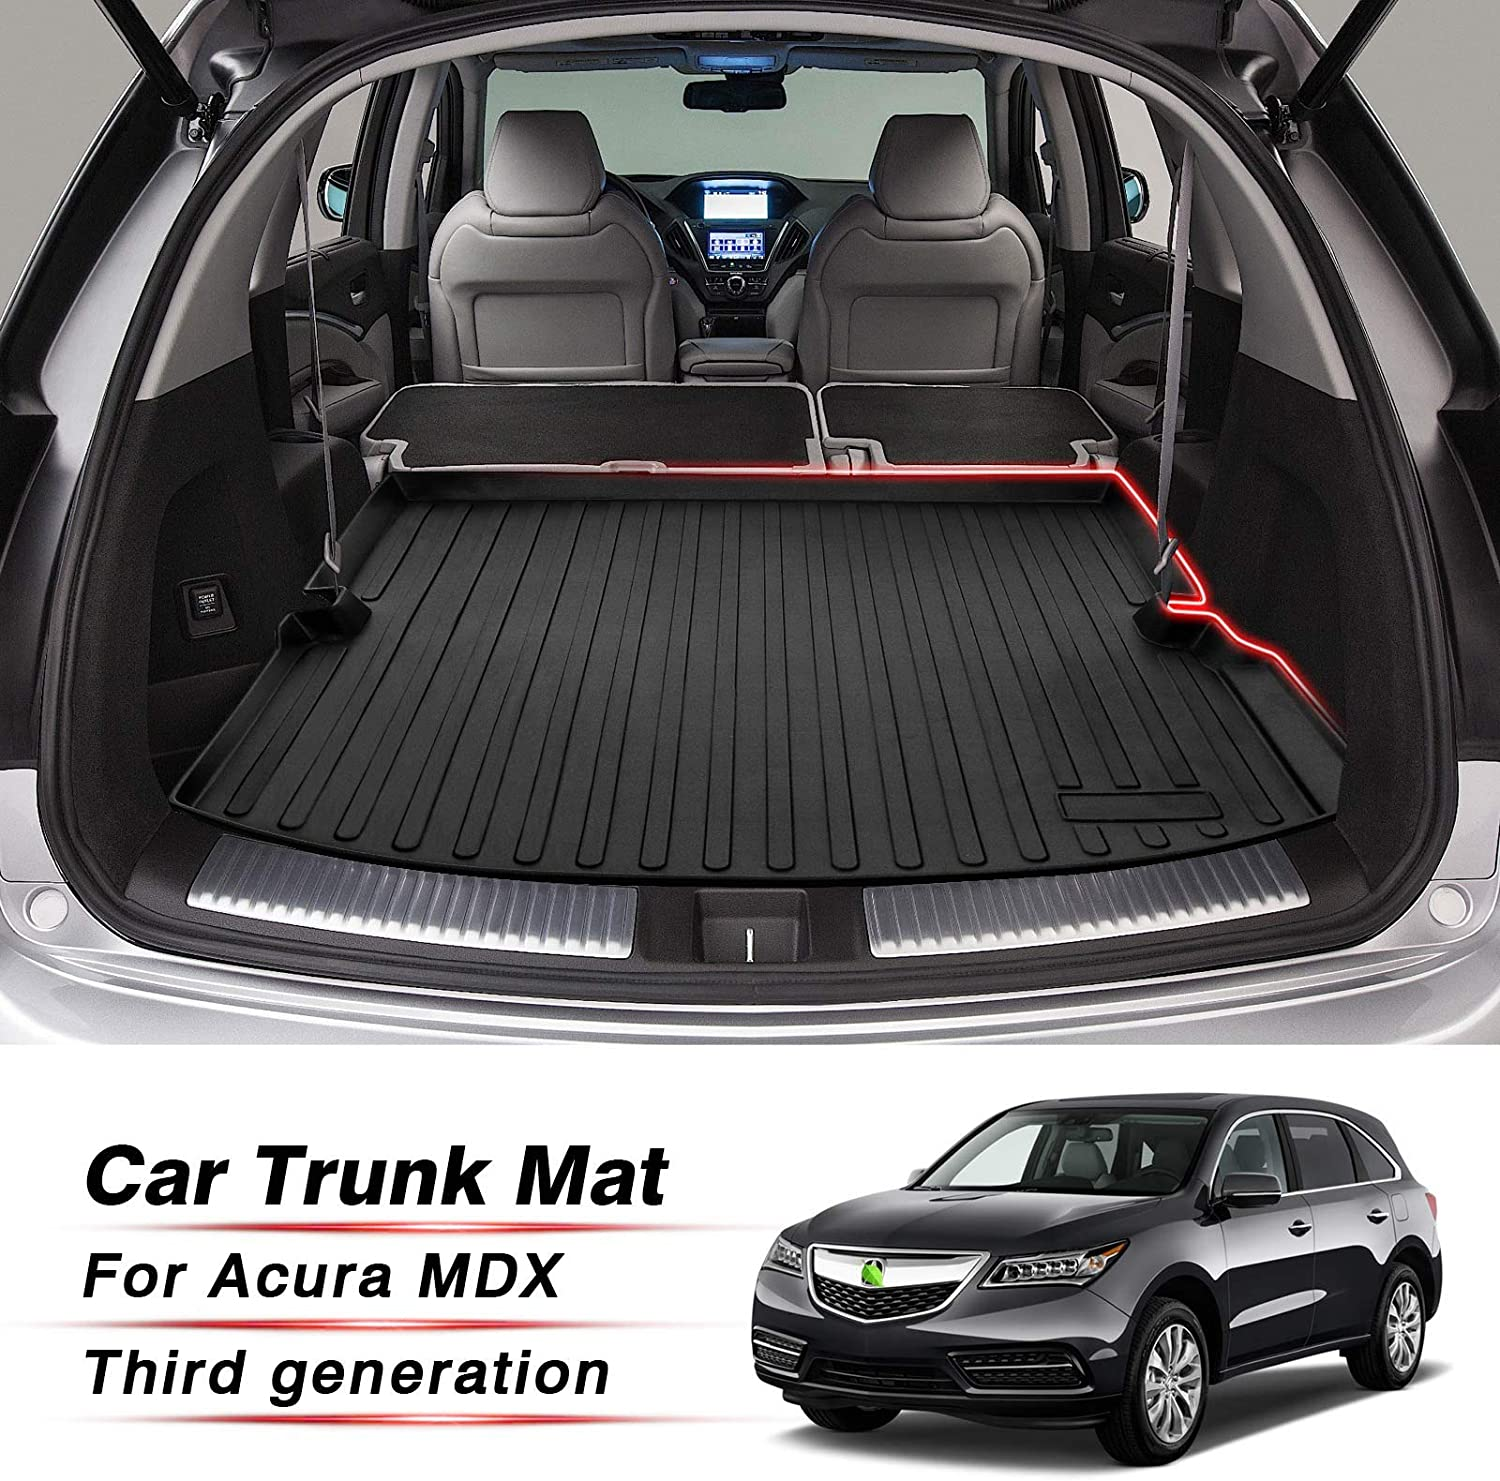 T TGBROS All Weather Cargo Trunk Liner Floor Mat for 2014-2020 Acura MDX Trunk Liner Tray Heavy Duty Cargo Mat